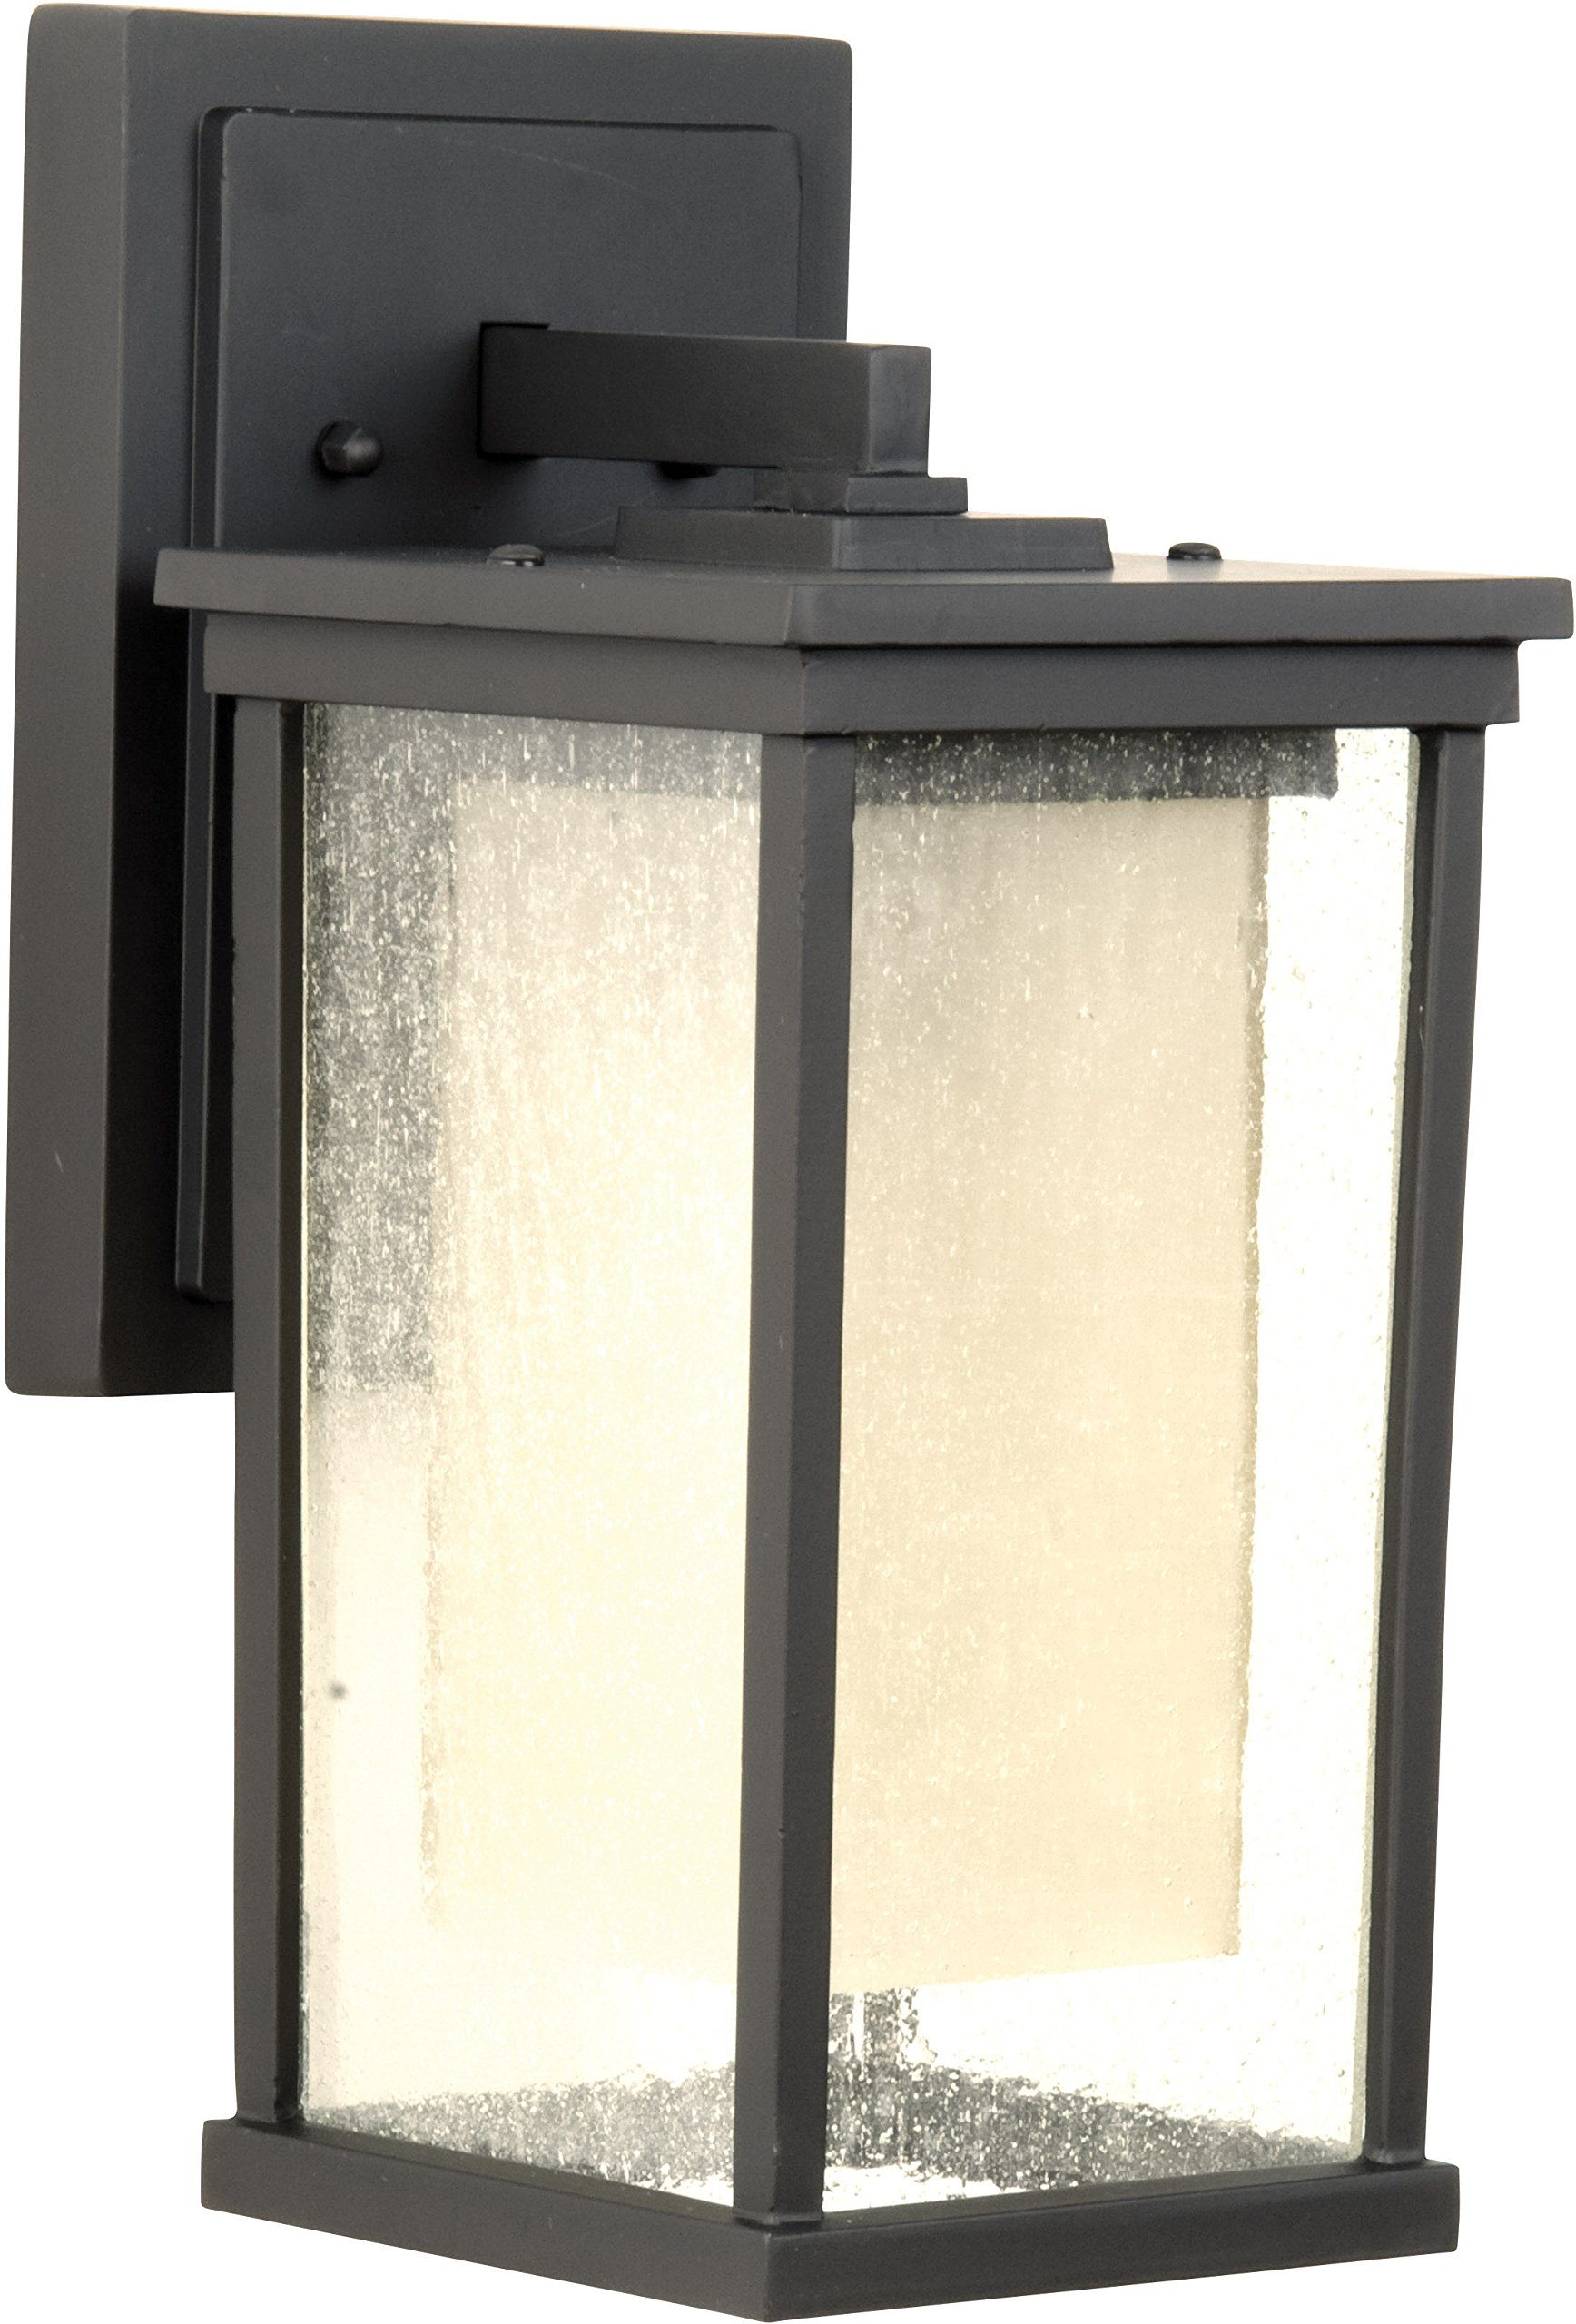 Craftmade Z3714-92-NRG Wall Lantern with Clear Seeded Outer and Frosted Amber Inner Glass Shades, Oiled Bronze Finish